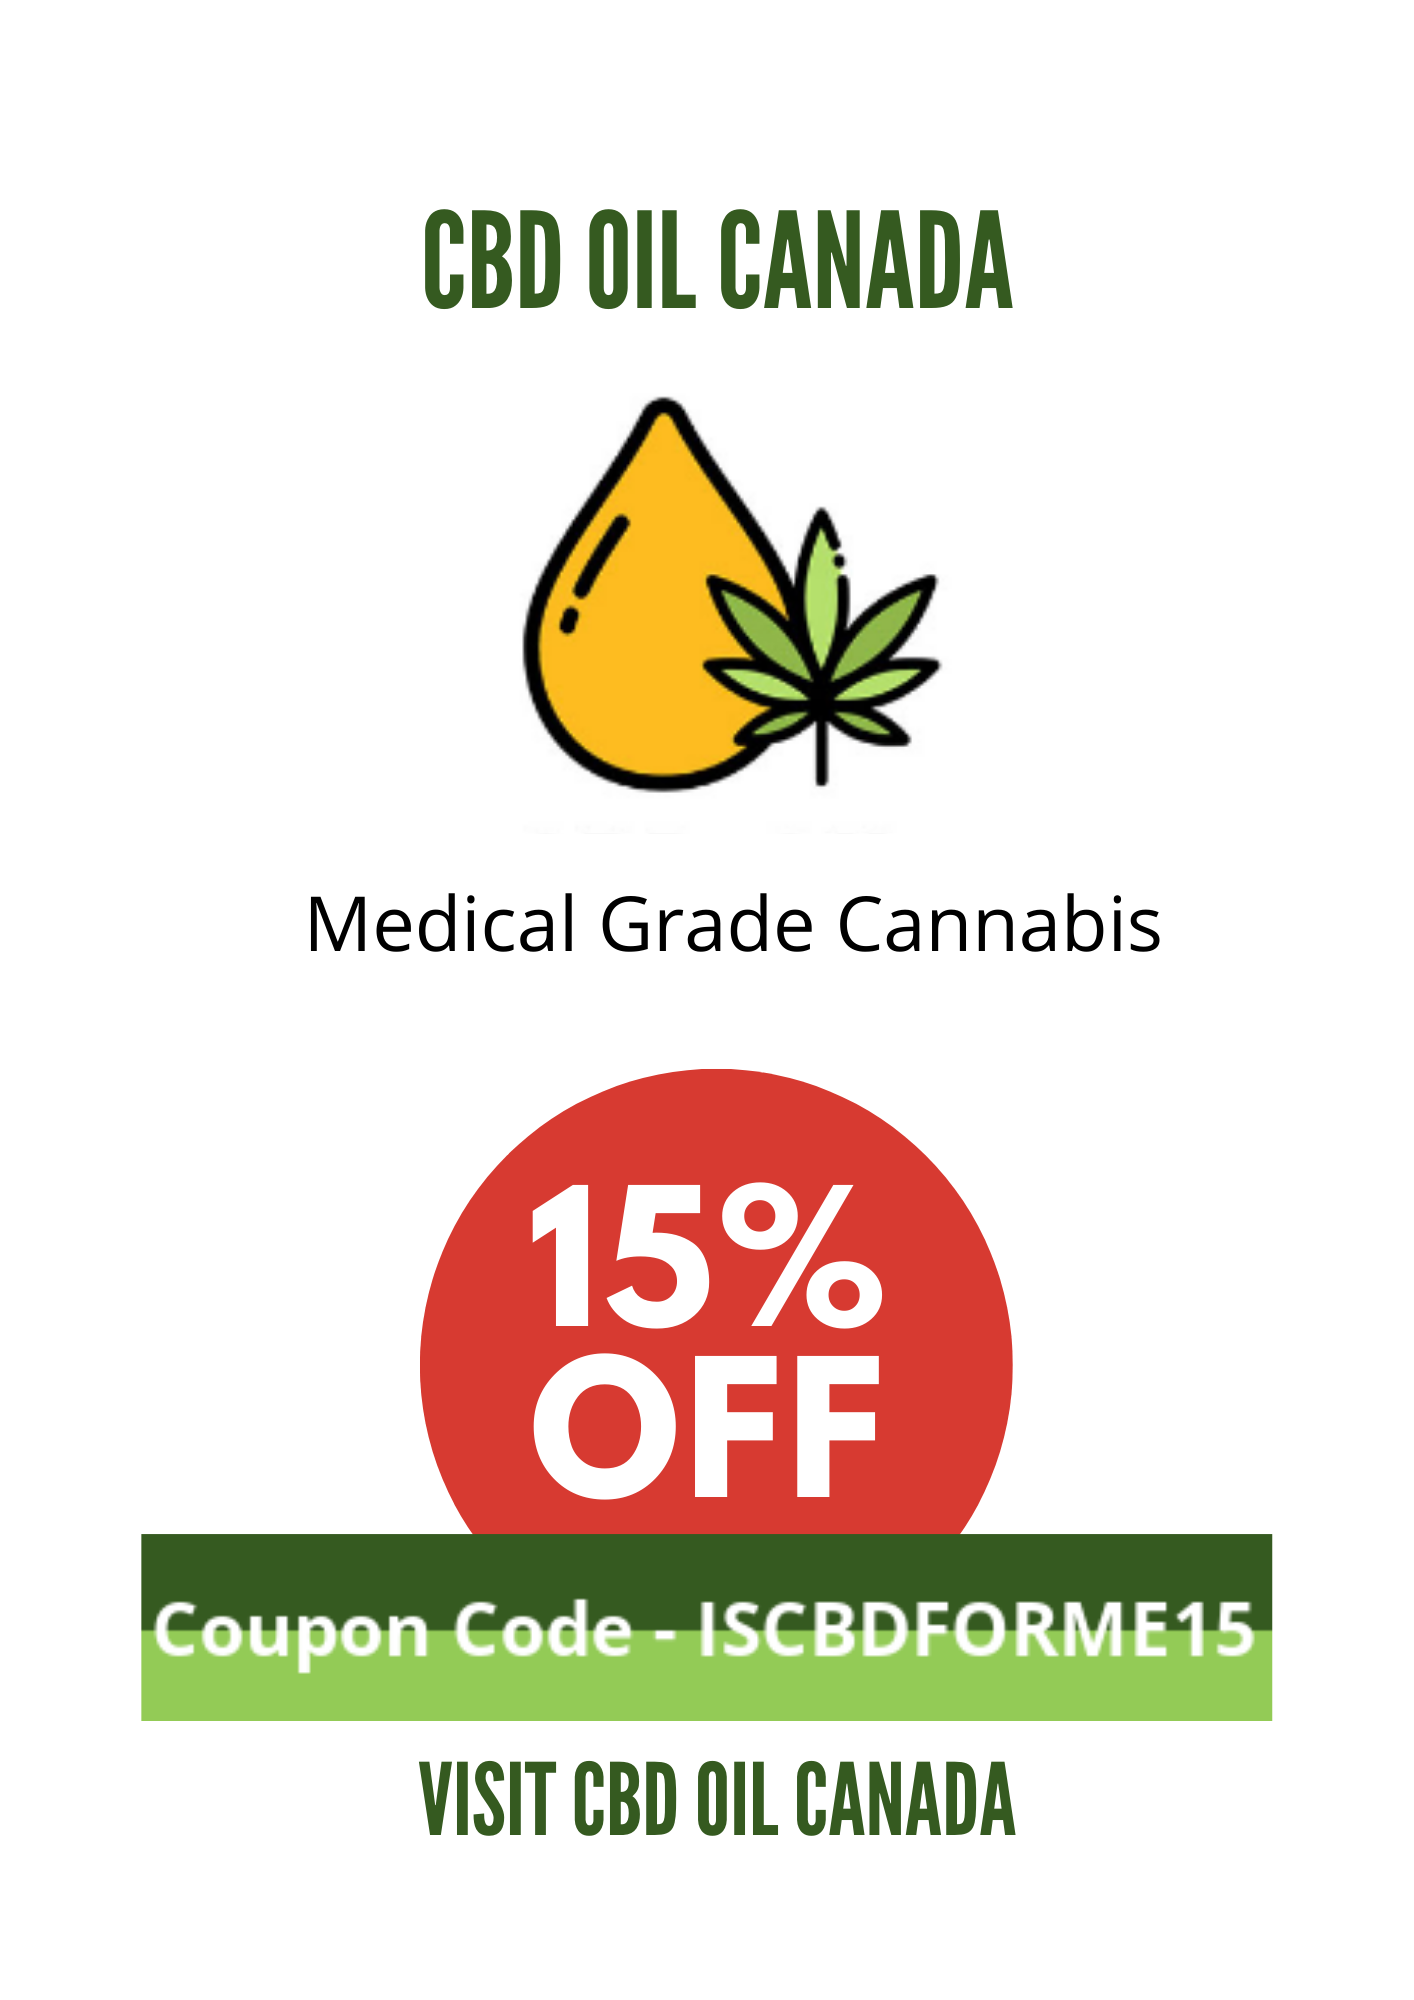 CBD OIL CANADA COUPON